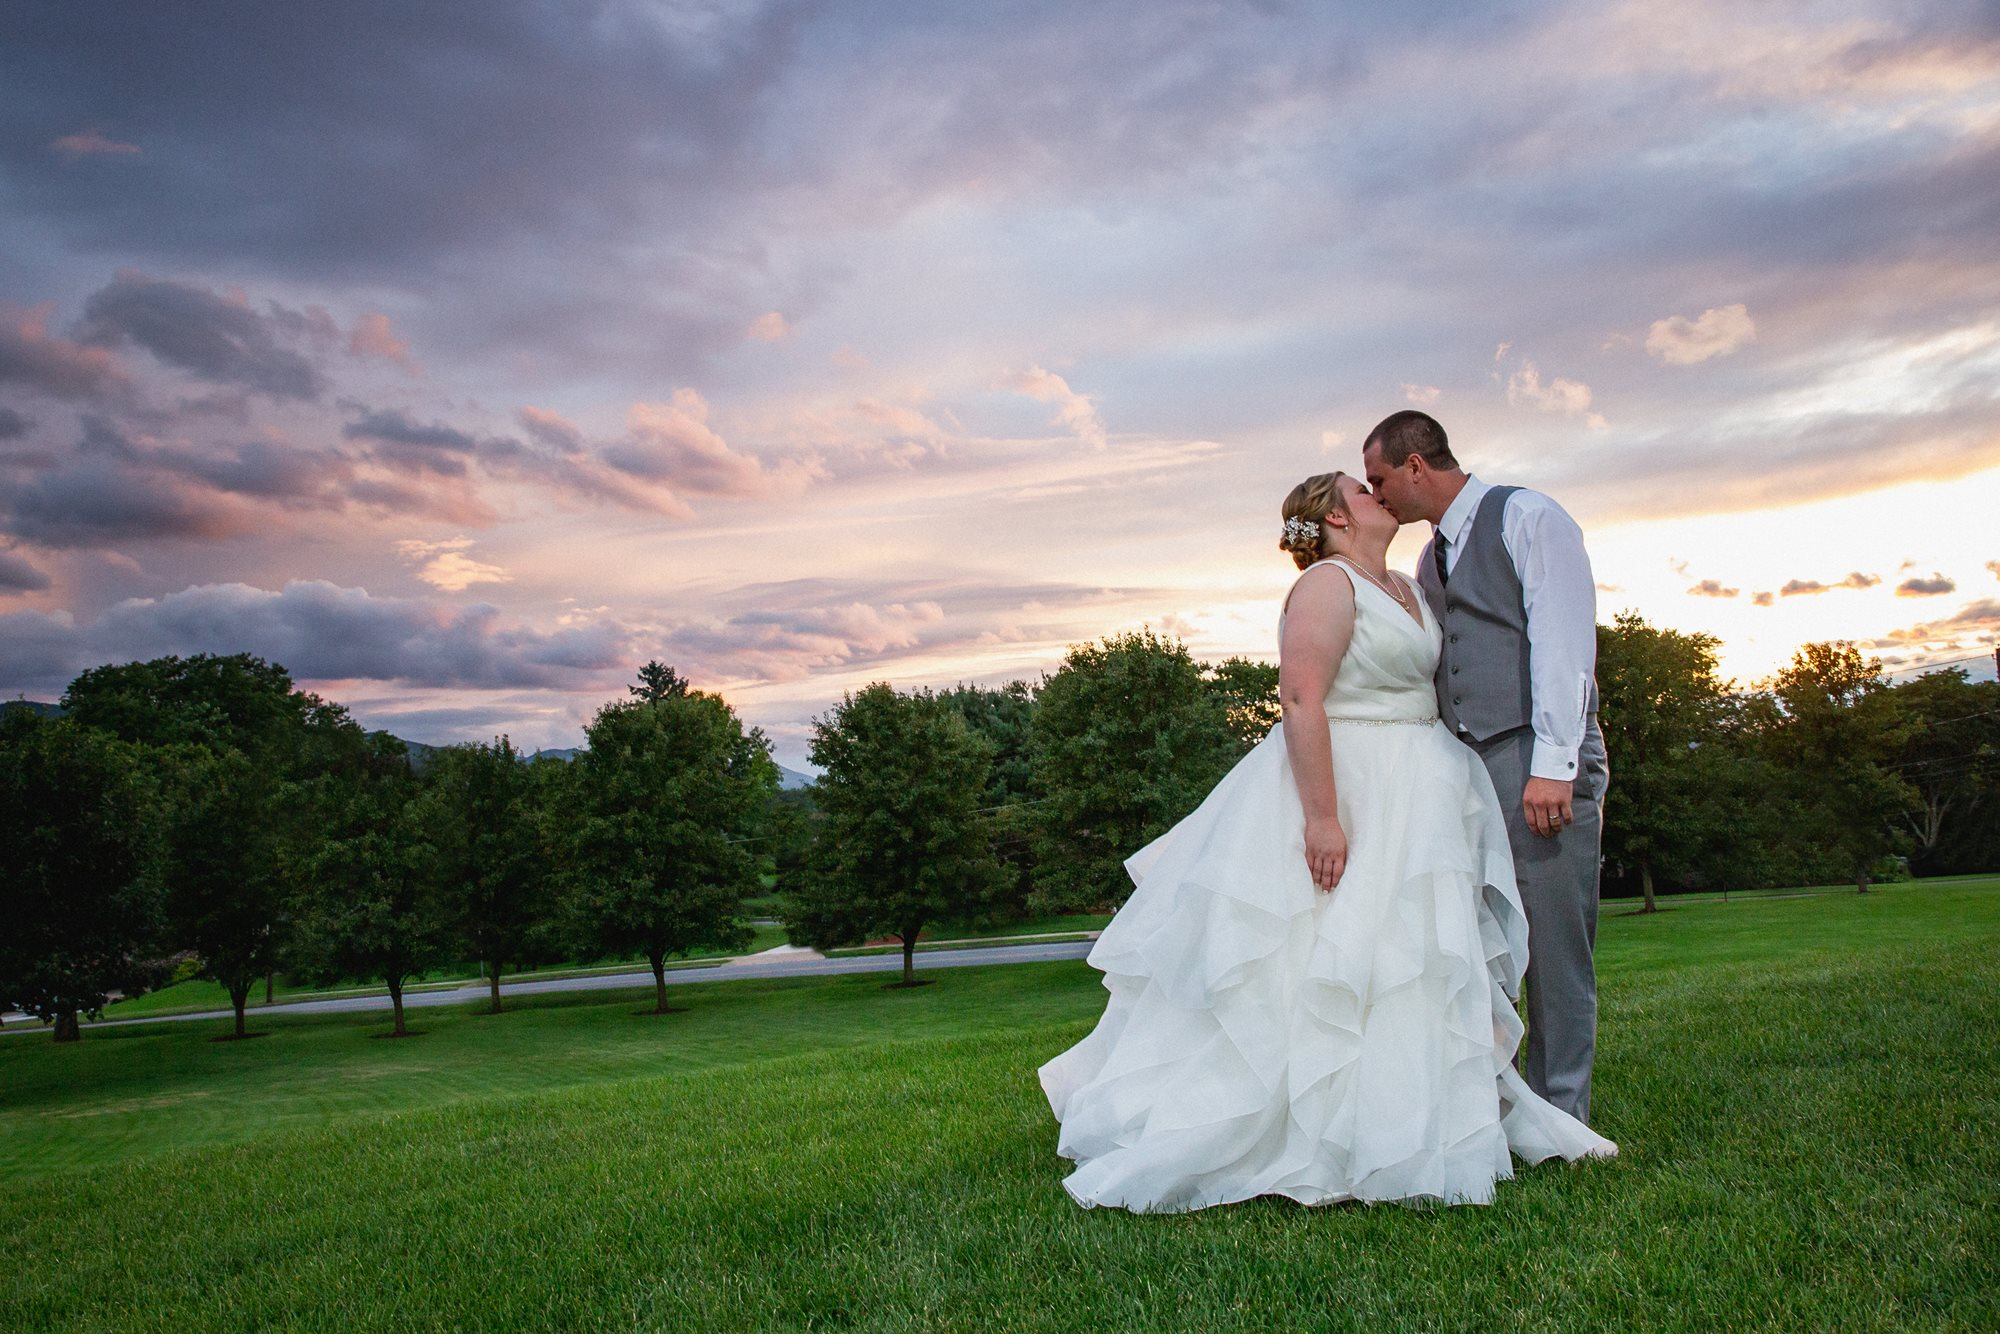 Marissa_and_Tyler_s_Wedding-6_Bride_and_Groom-0062